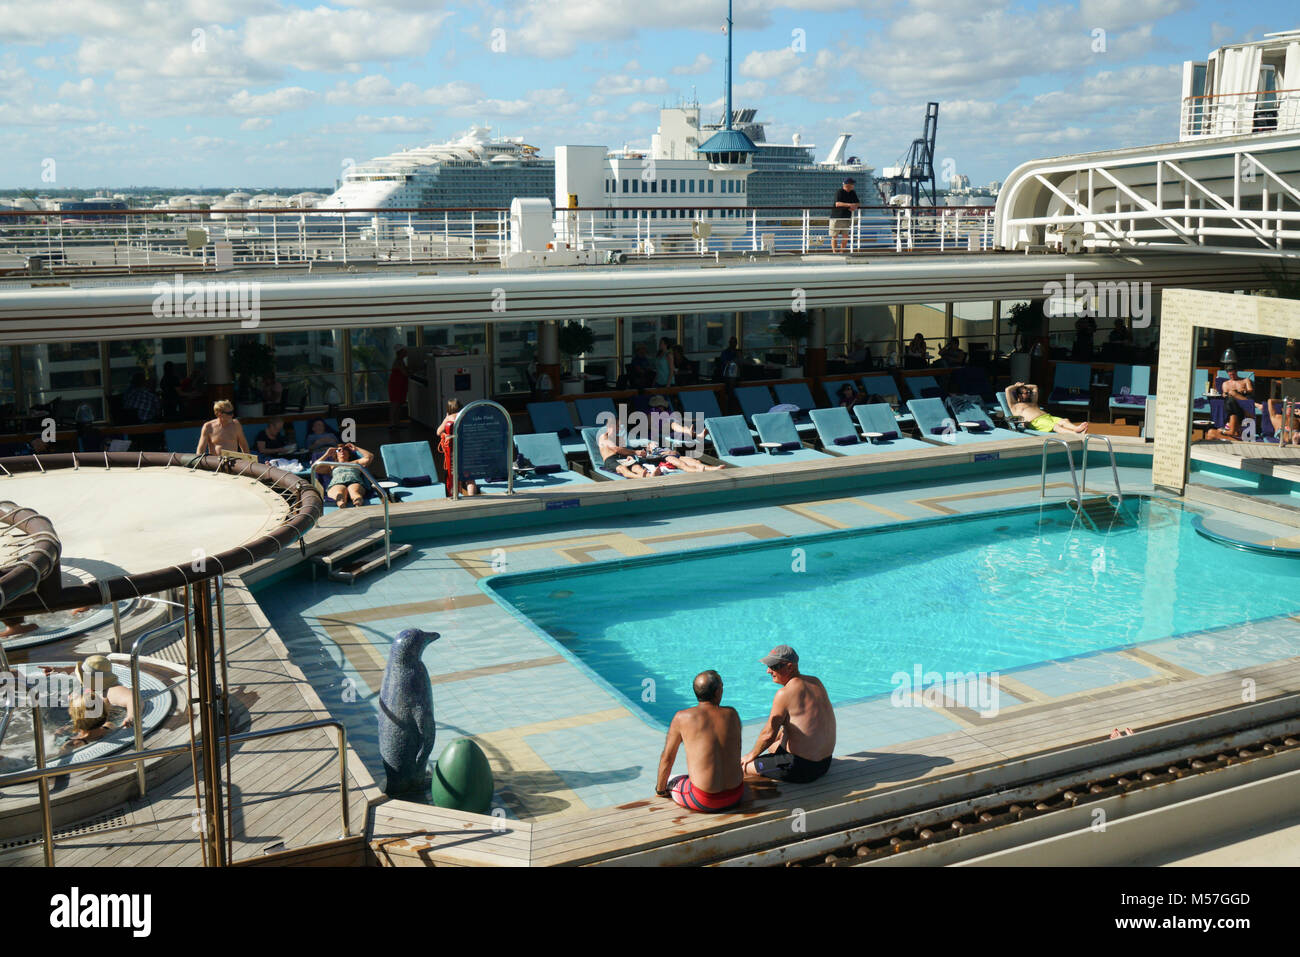 On cruise ship Niew Amsterdam, Caribbean and Florida - Stock Image